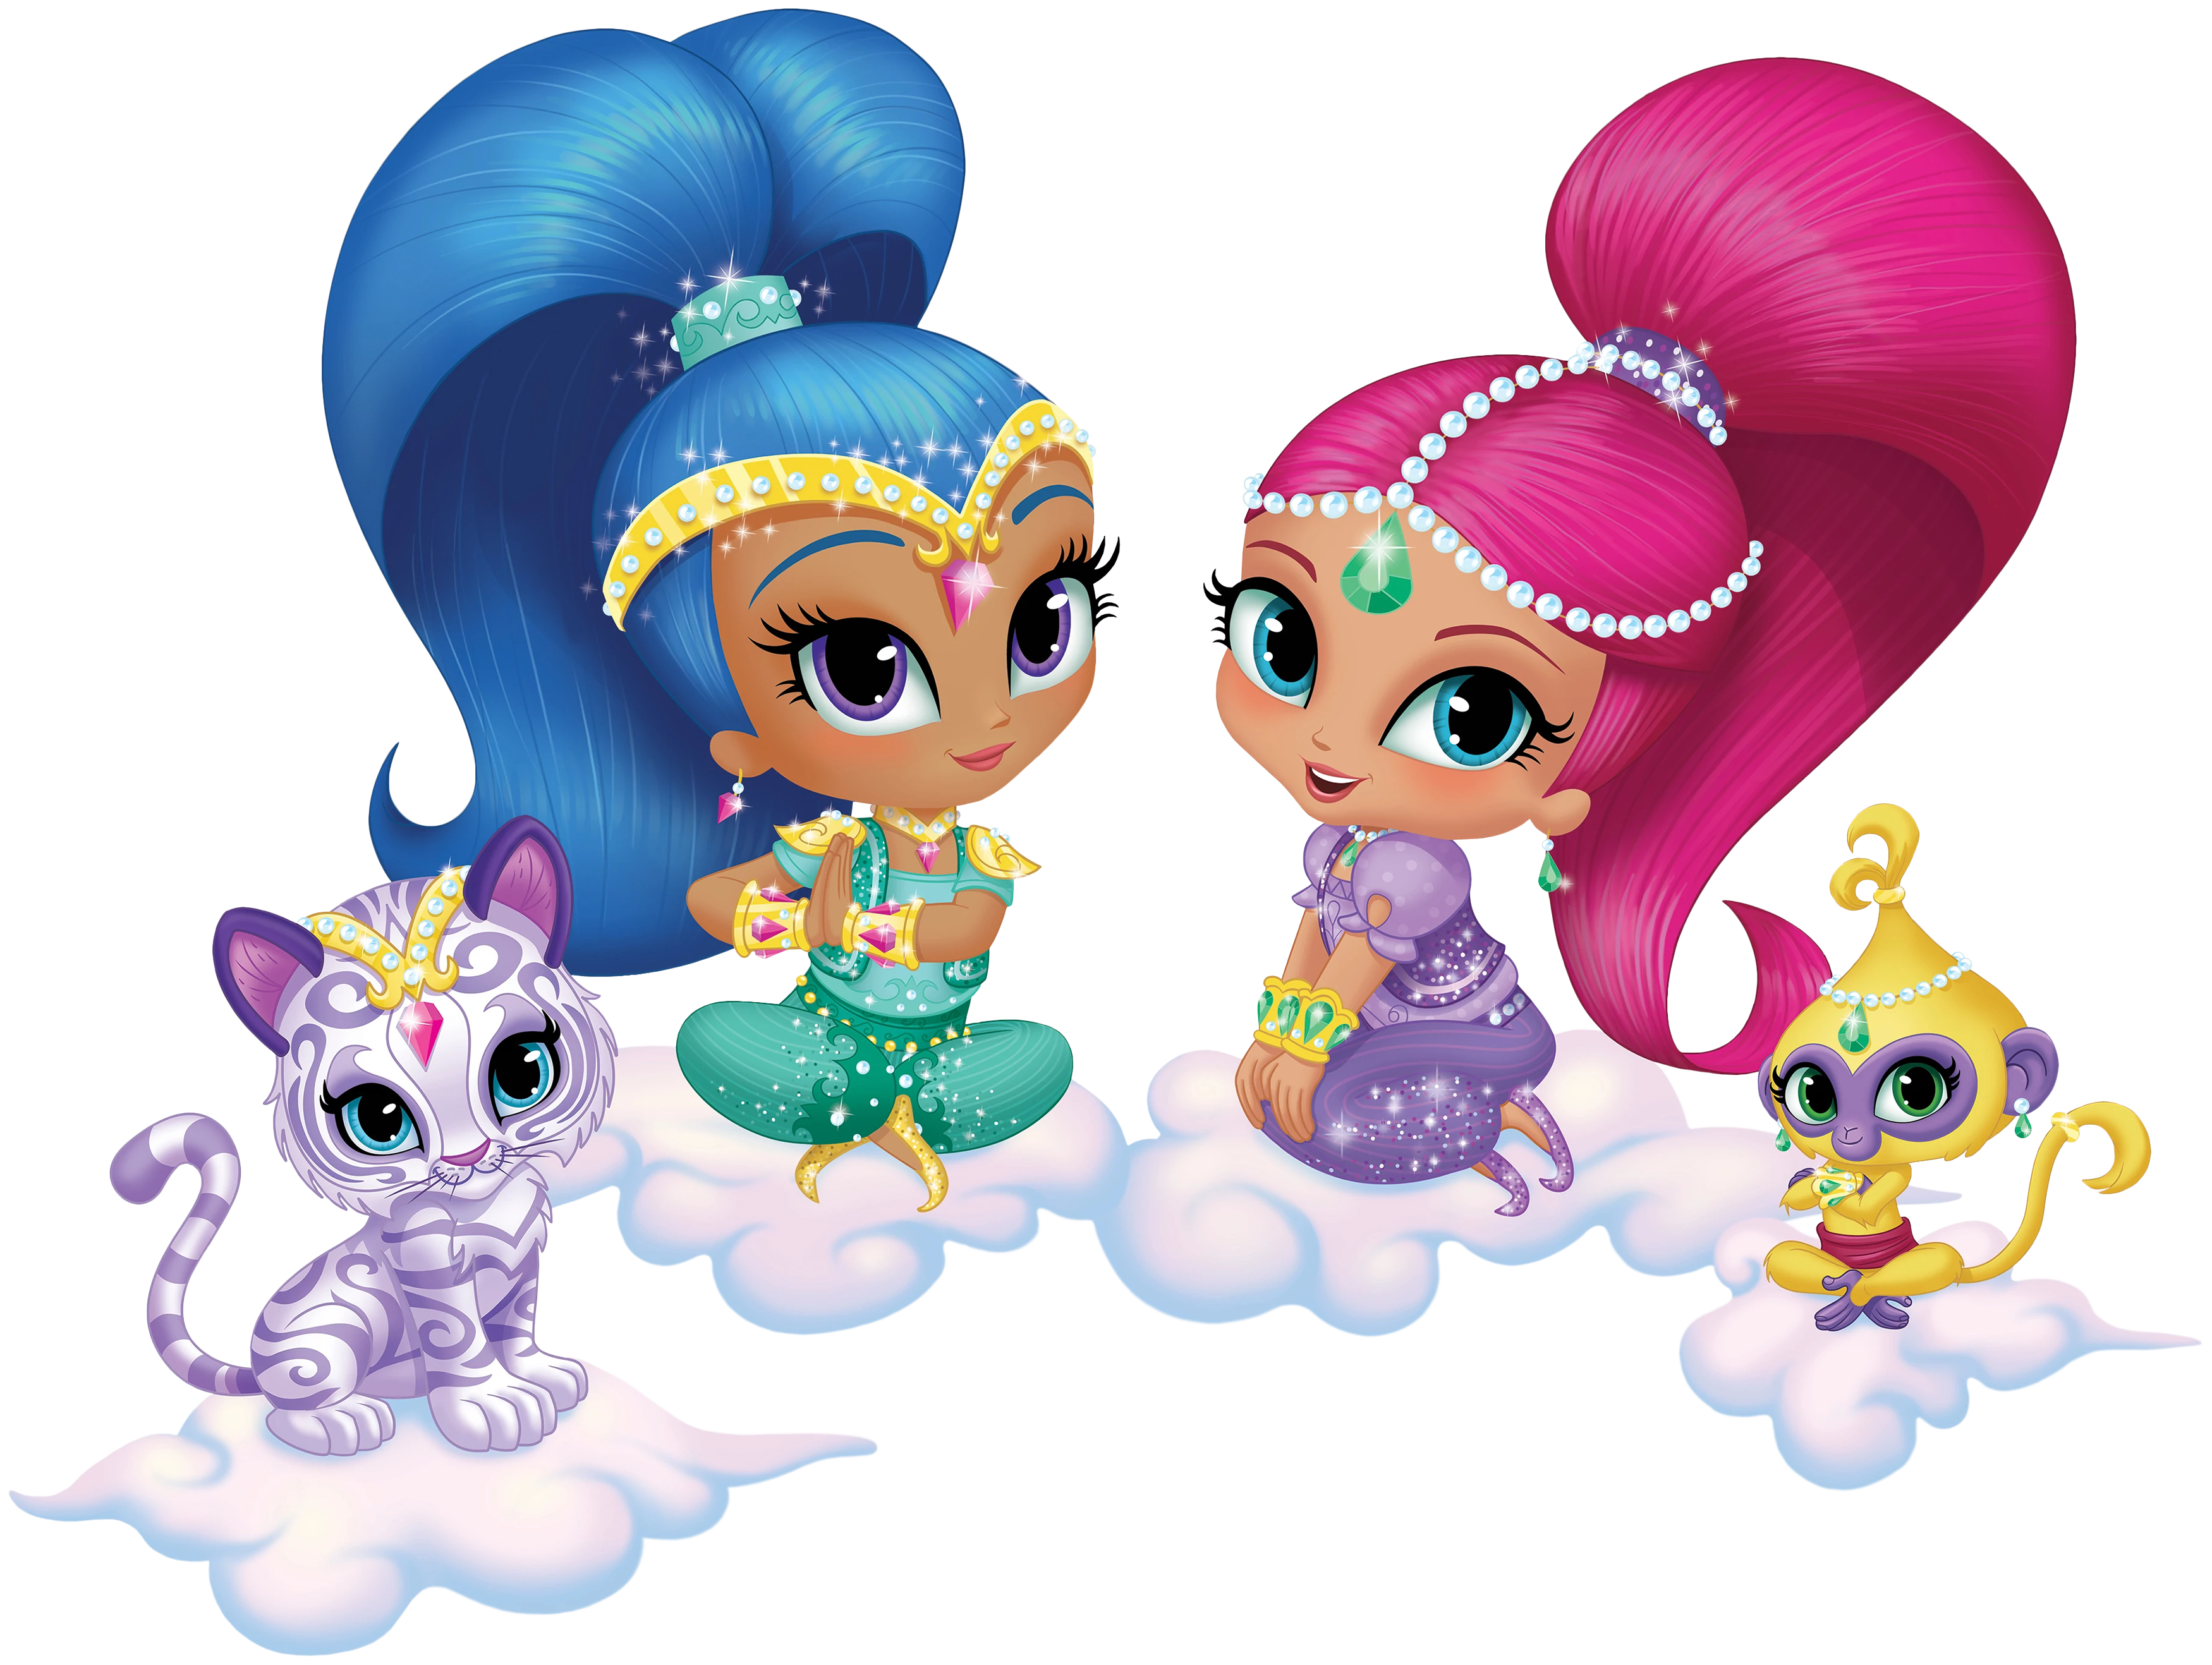 Shimmer and shine clipart. Transparent png cartoon image